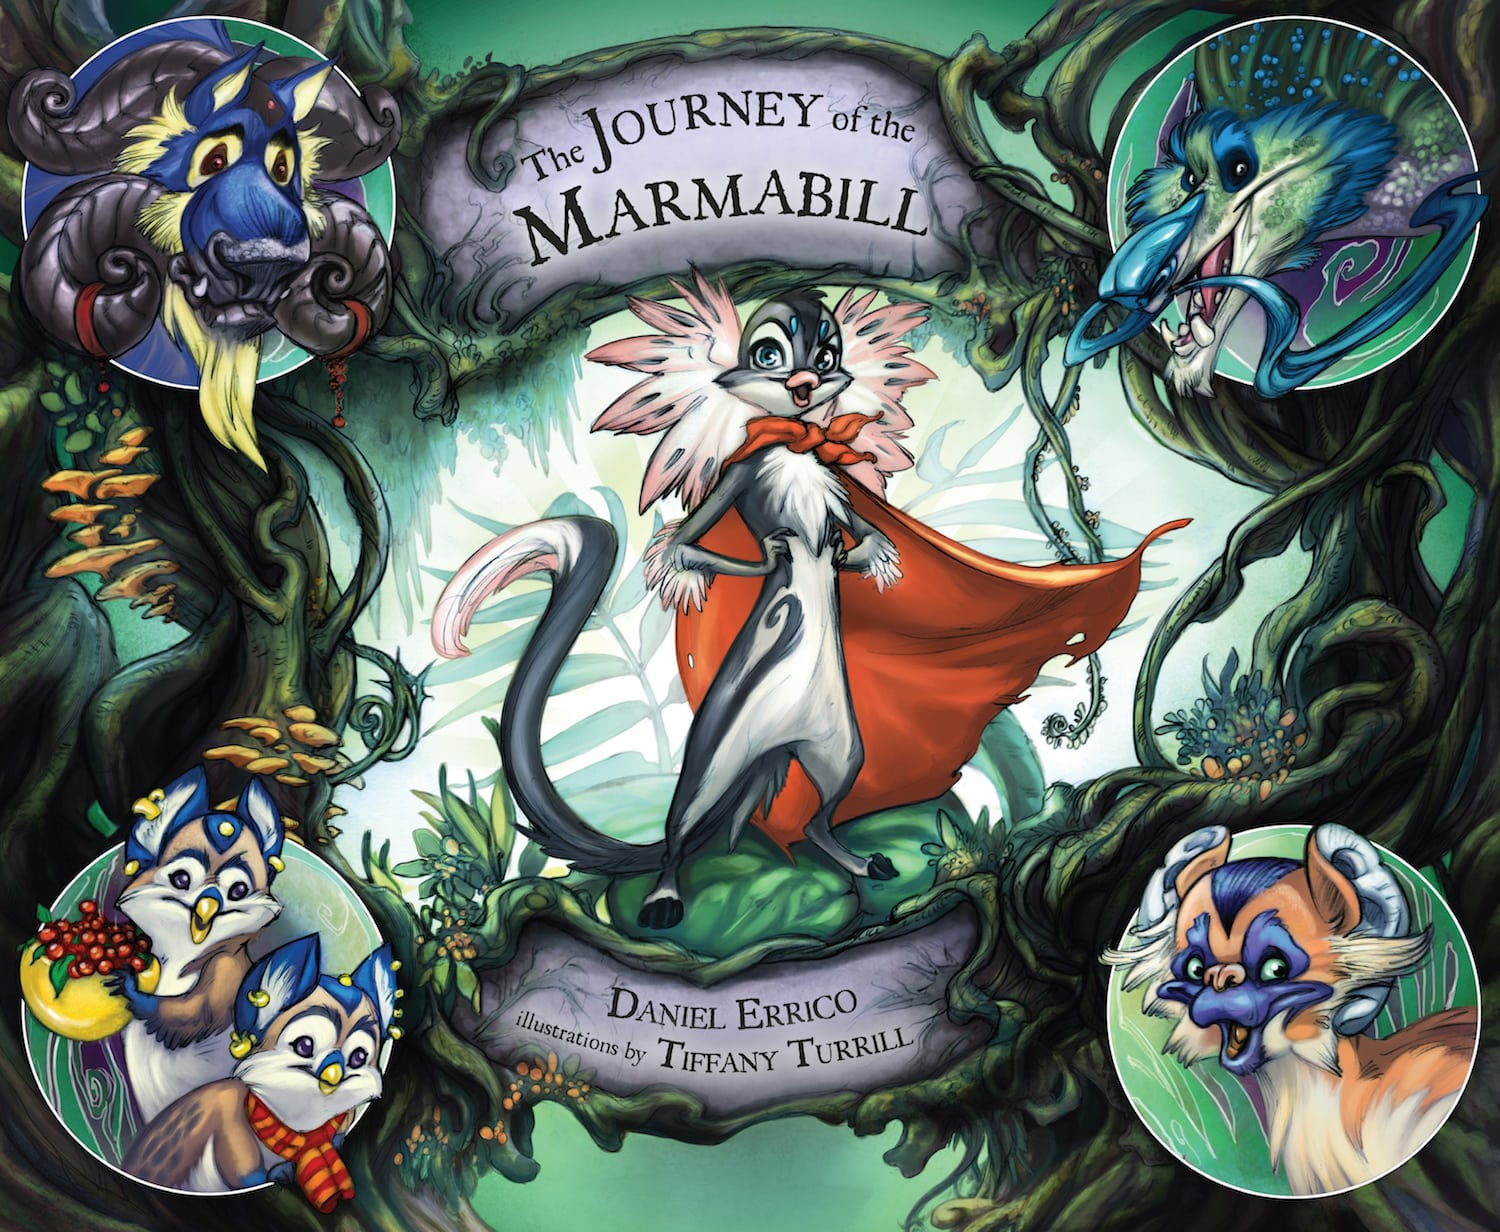 The Journey of The Marmabill Hardcover Book Cover All Stories for Kids.jpg